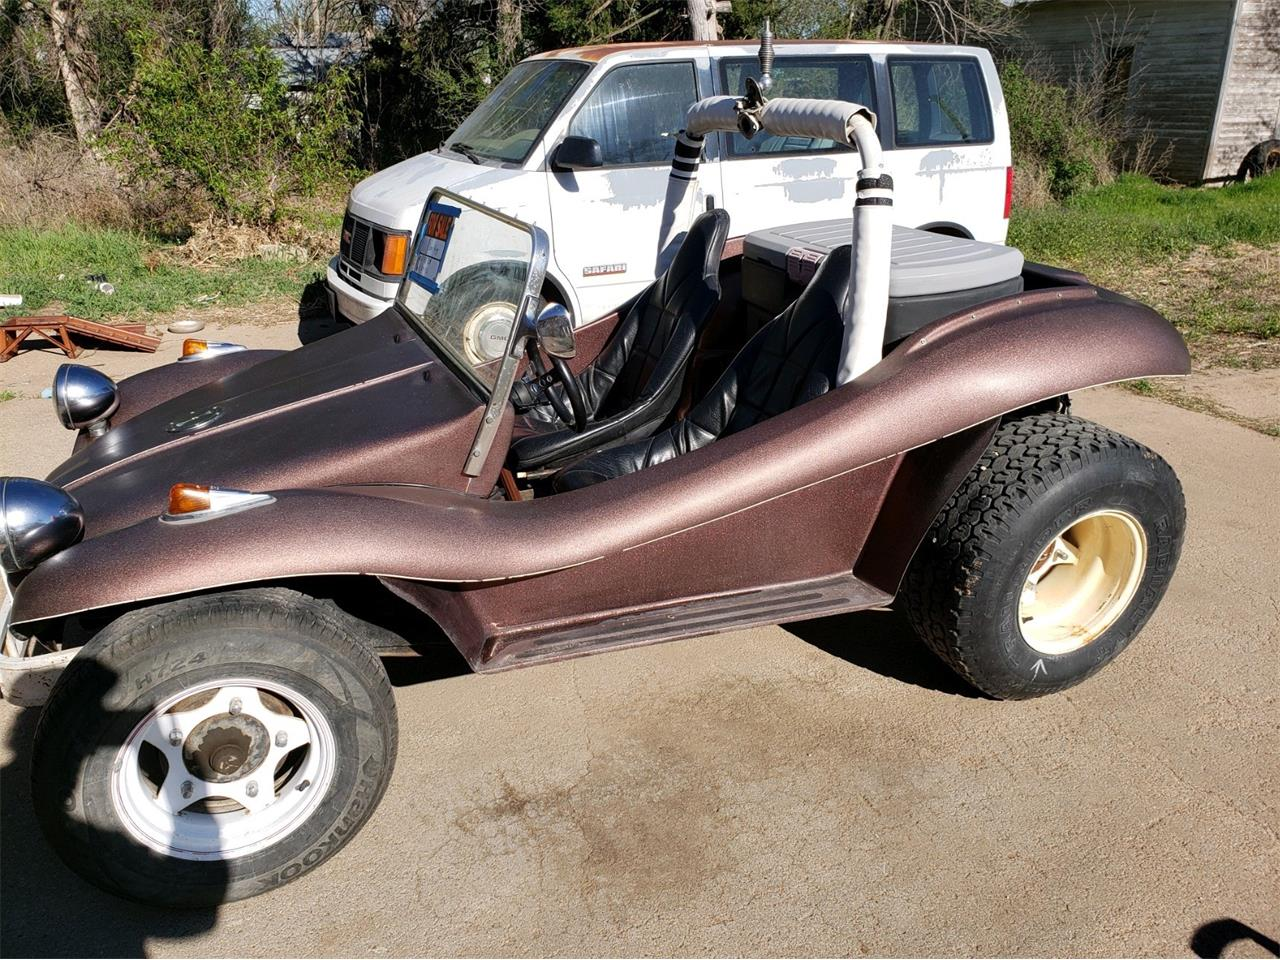 For Sale: 1975 Volkswagen Dune Buggy in Garfield, Kansas